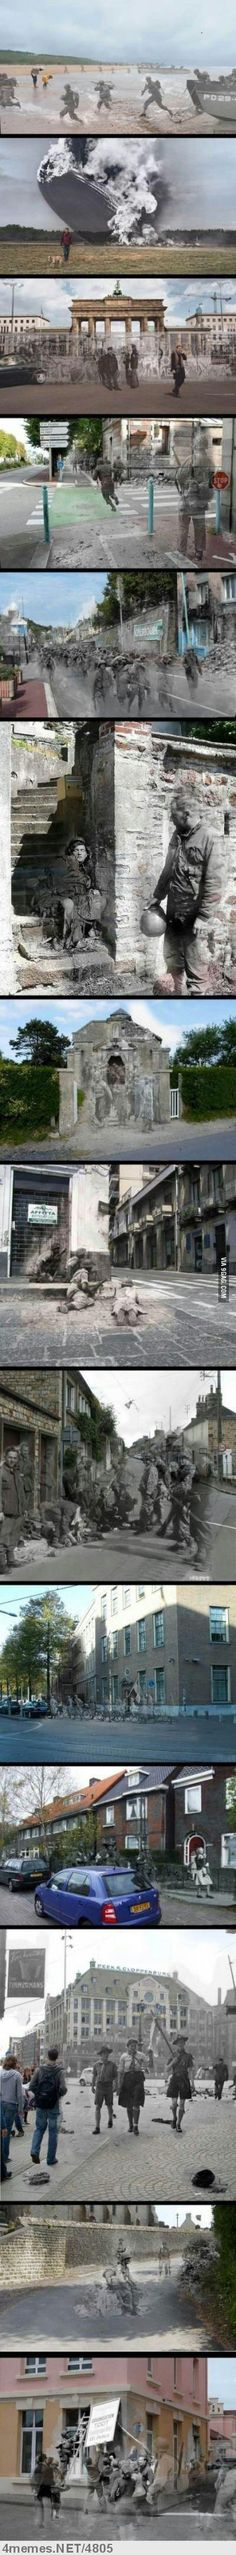 Places 69 years after the 2. World War